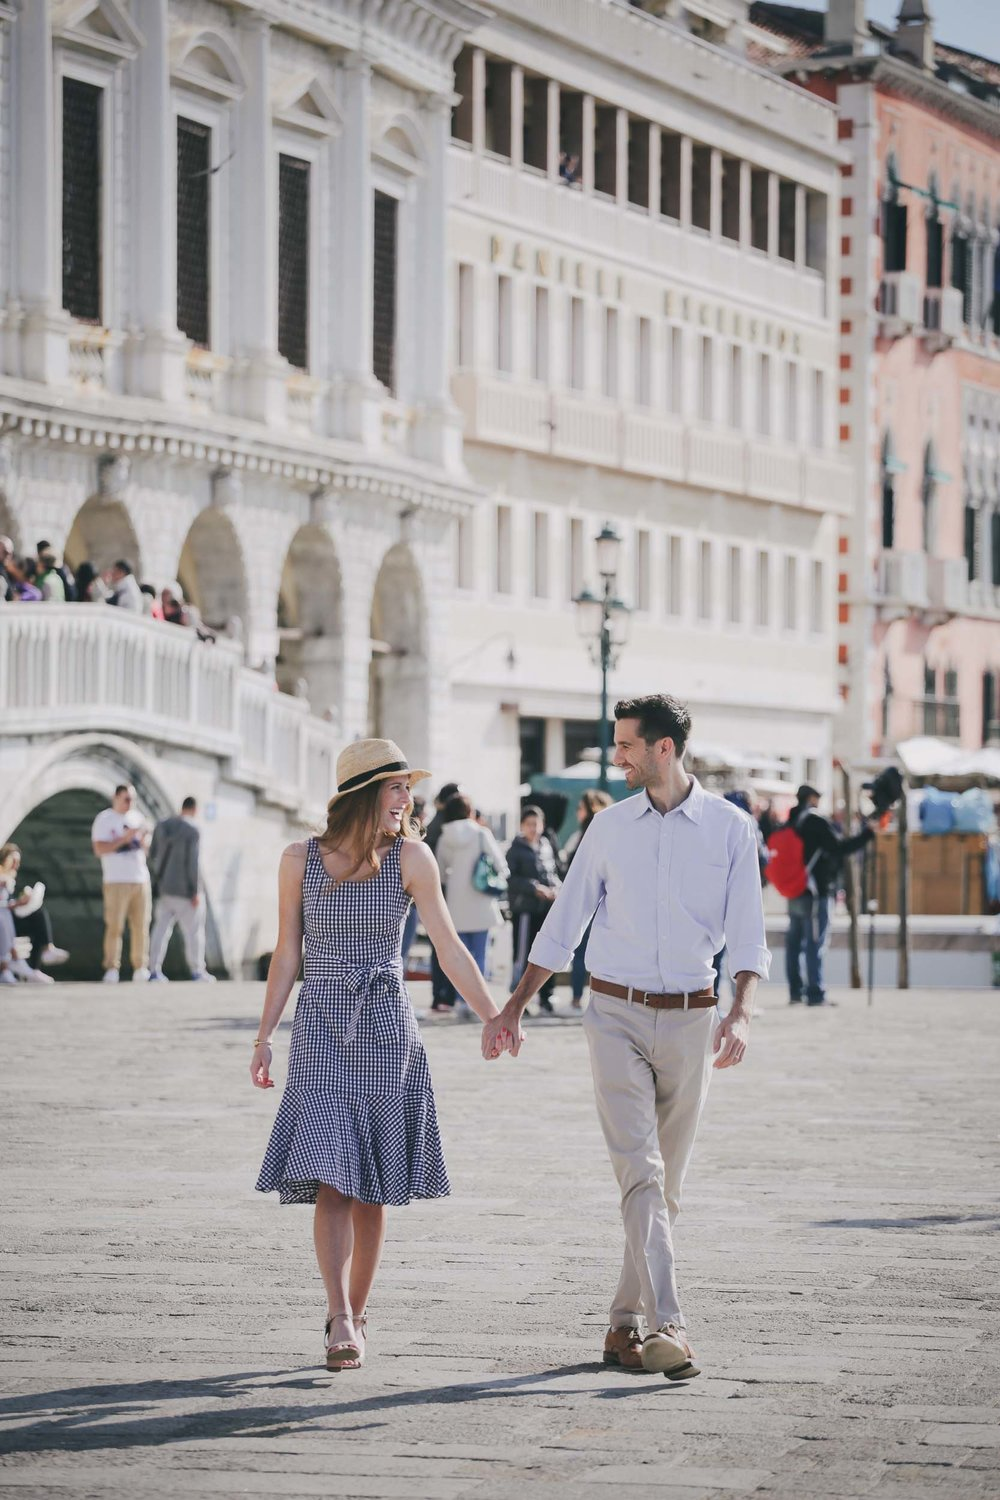 Click to see more of this couple's dreamy getaway to Venice on the Flytographer blog! | Travel + Vacation Photographer | Family Vacations | Engagement Proposals | Honeymoons | Anniversary Gifts | Bachelorette Ideas | Solo Traveller Tips Flytographer captures your travel memories - everything from surprise proposals, honeymoons, family vacations, and more. So often you are missing out of your own photos, Flytographer solves that problem for you. Our photographers also act as informal tour guide and provide fun local tips to our customers and show them an area of a city they may not have explored with Flytographer. Book your photographer at1.888.211.7178 or visit our website at www.flytographer.com/book